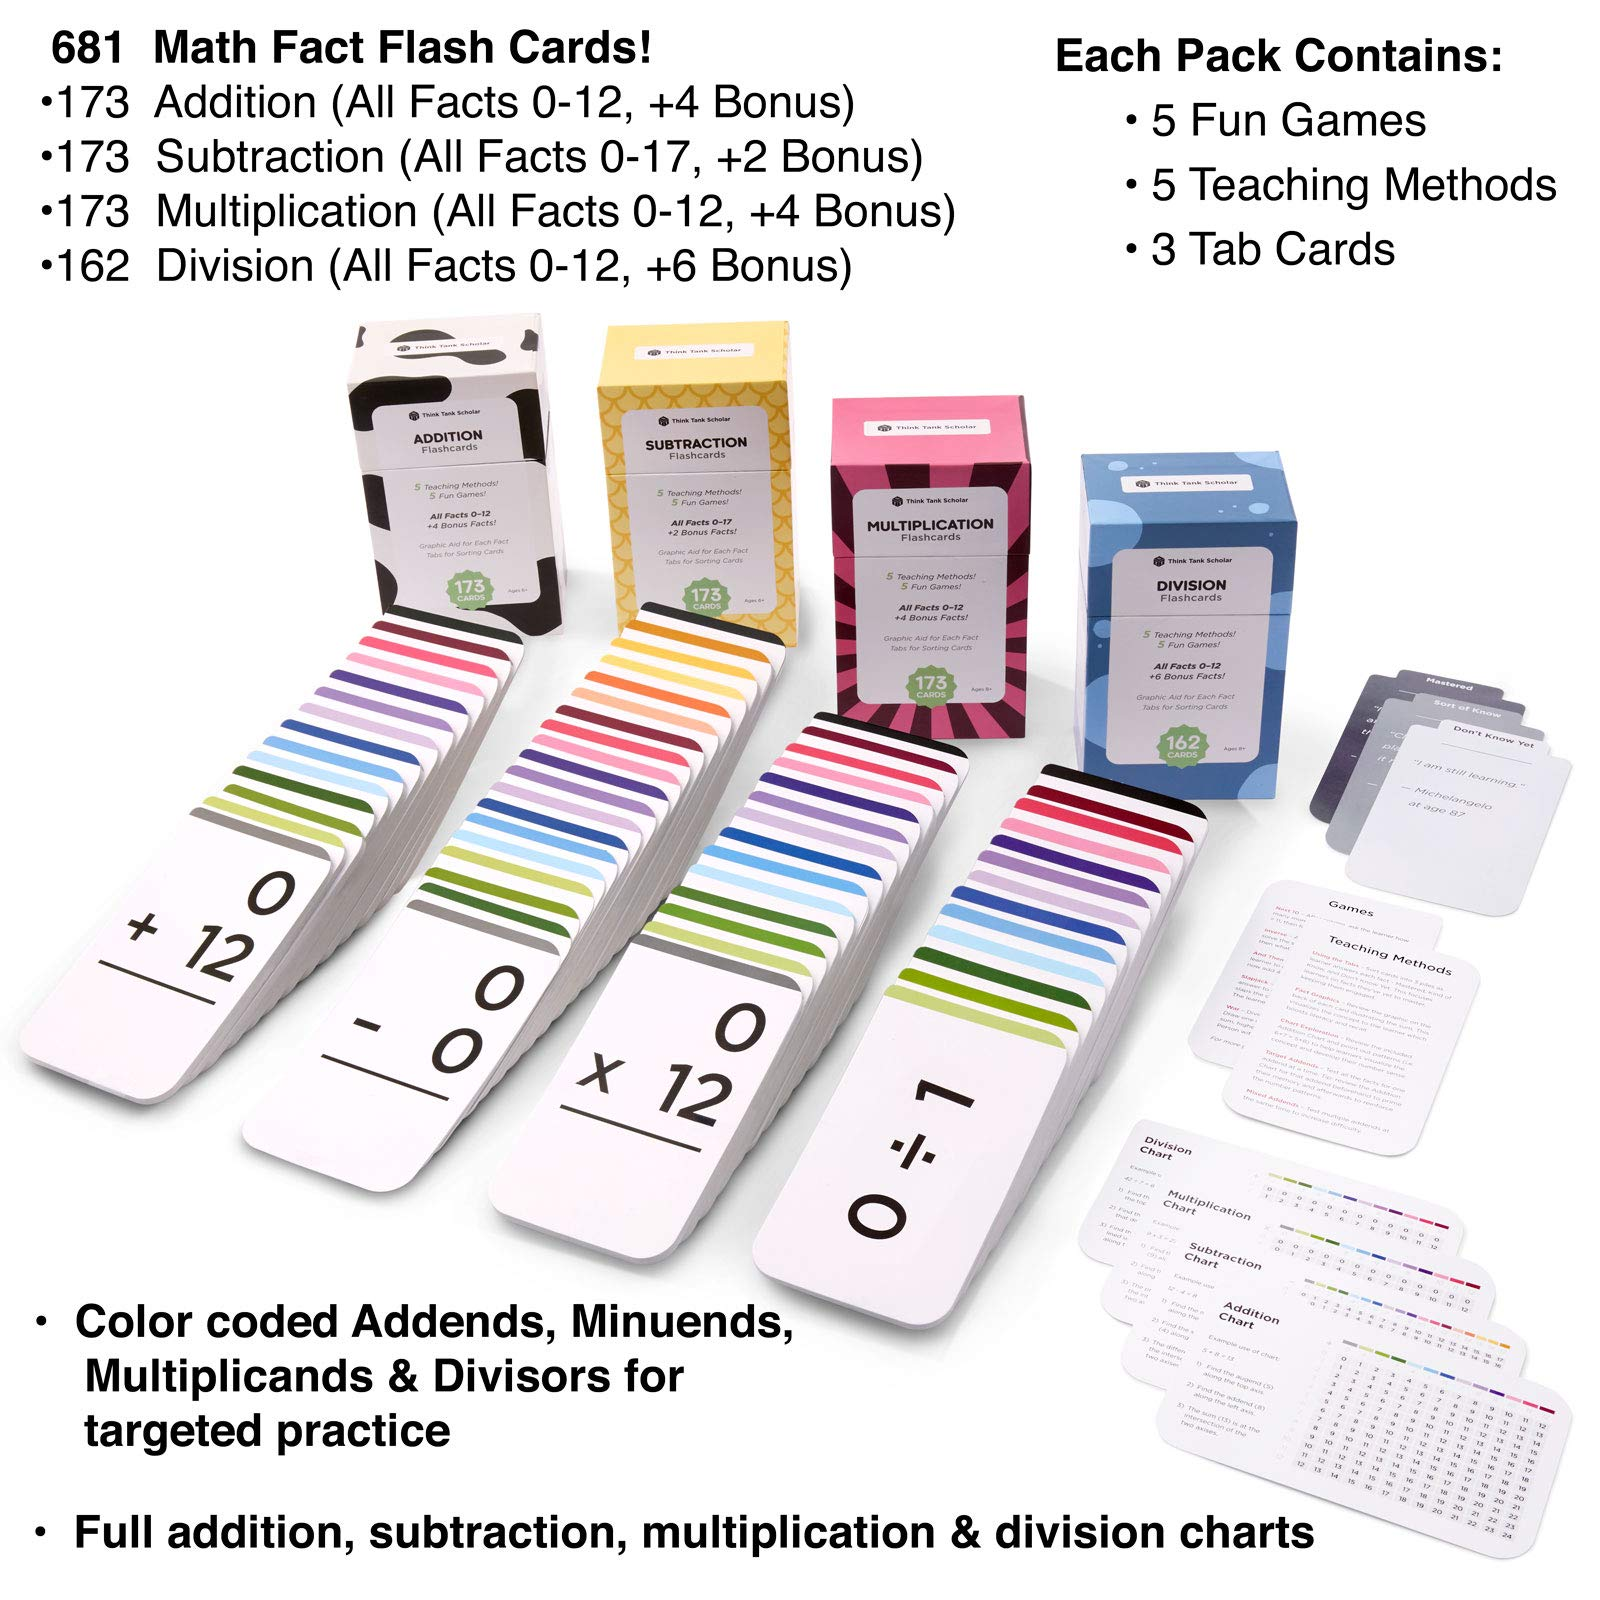 681 Math ADDITION, SUBTRACTION, MULTIPLICATION and DIVISION FLASH CARDS | Bundle Kit with Full Box Sets | All Facts Color Coded | Best for Kids in Kindergarten, 1ST, 2ND, 3RD, 4TH, 5TH and 6TH Grade by Think Tank Scholar (Image #2)